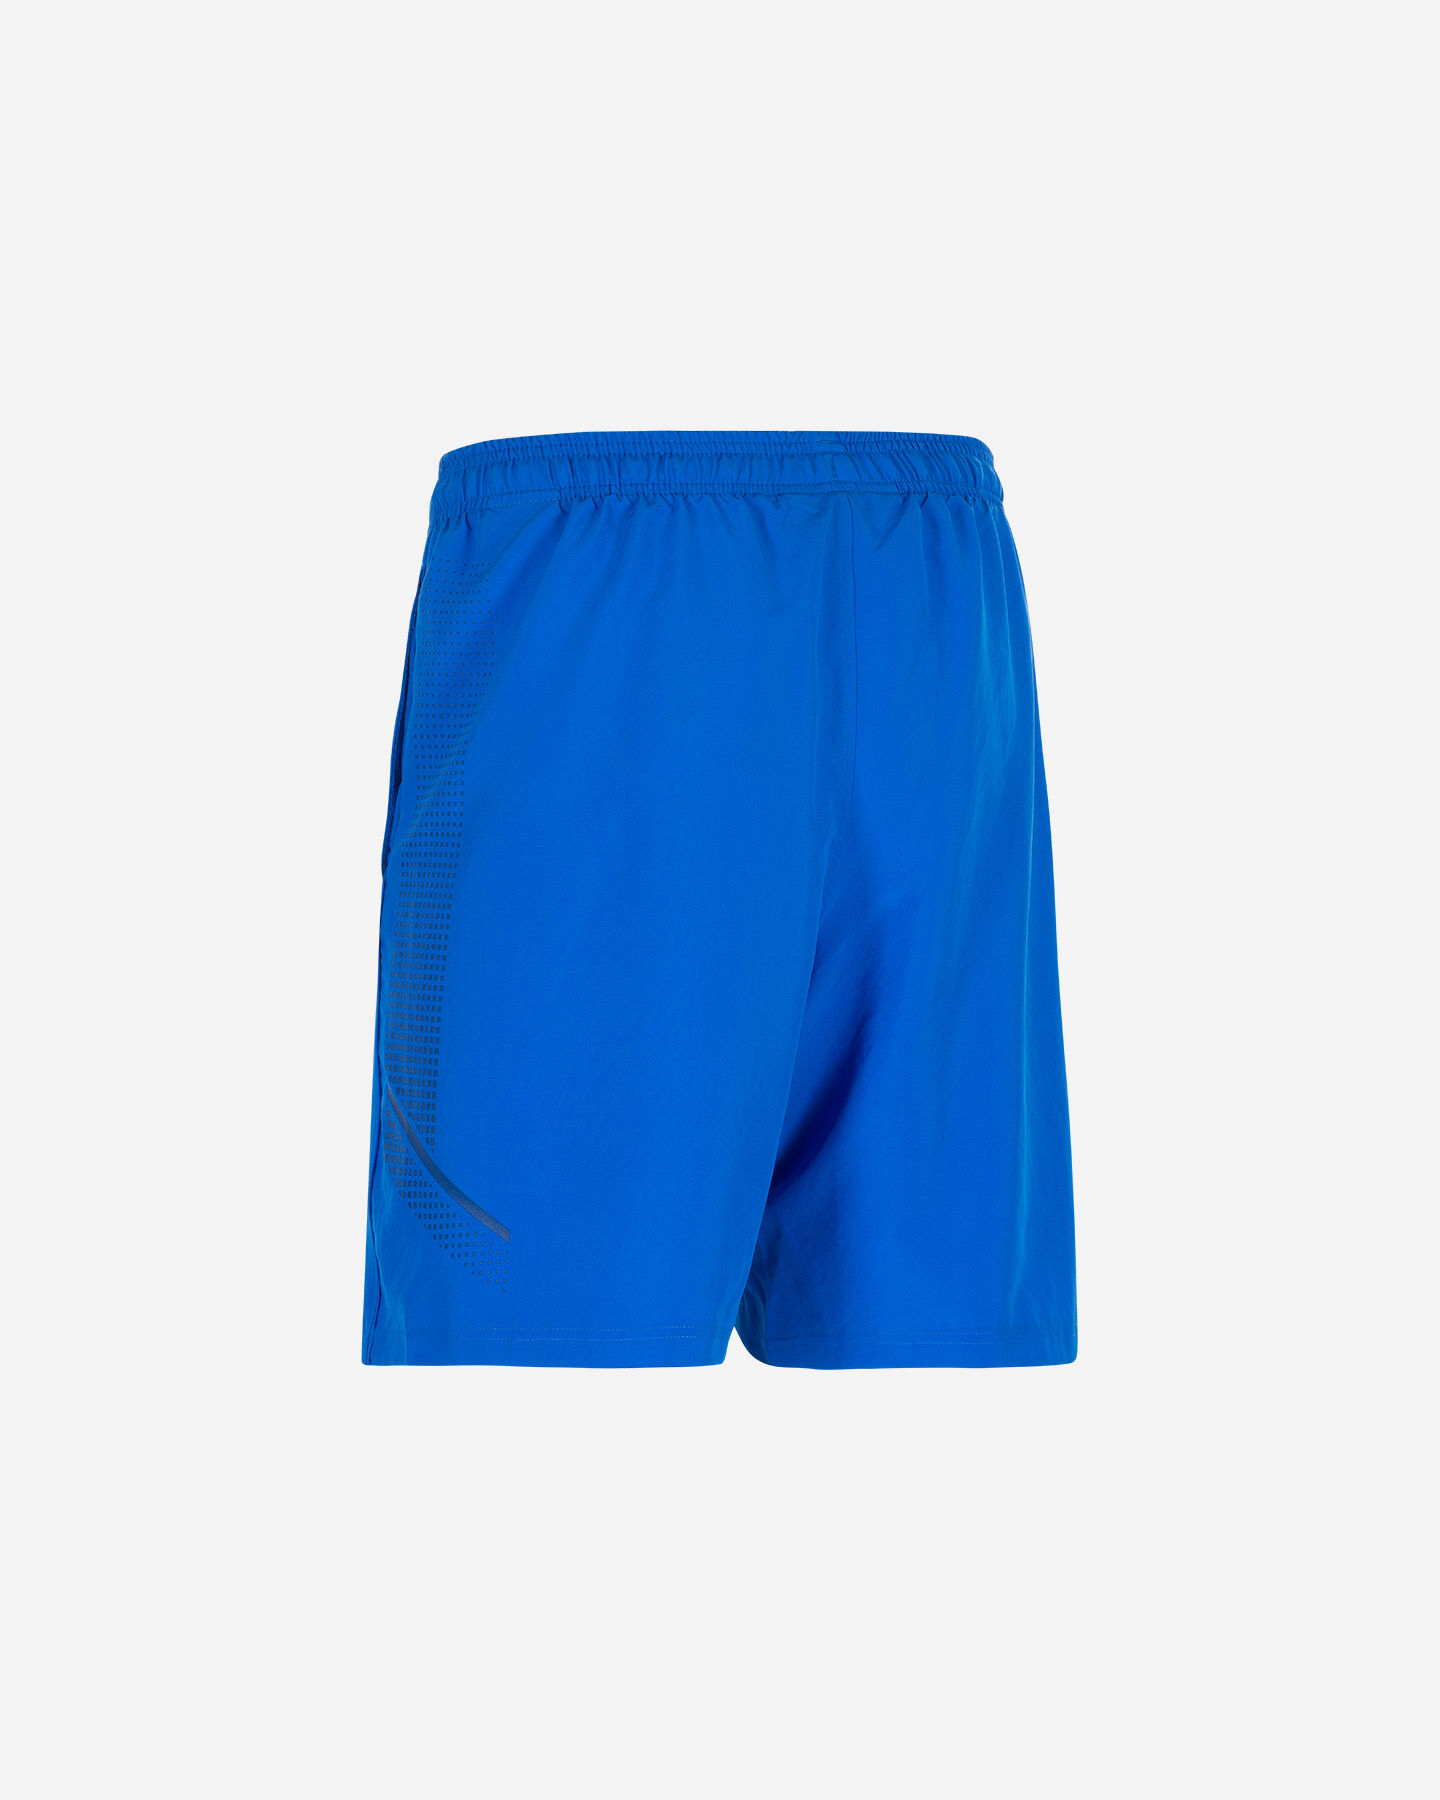 Pantalone training UNDER ARMOUR GRAPHIC M S5168087 scatto 1